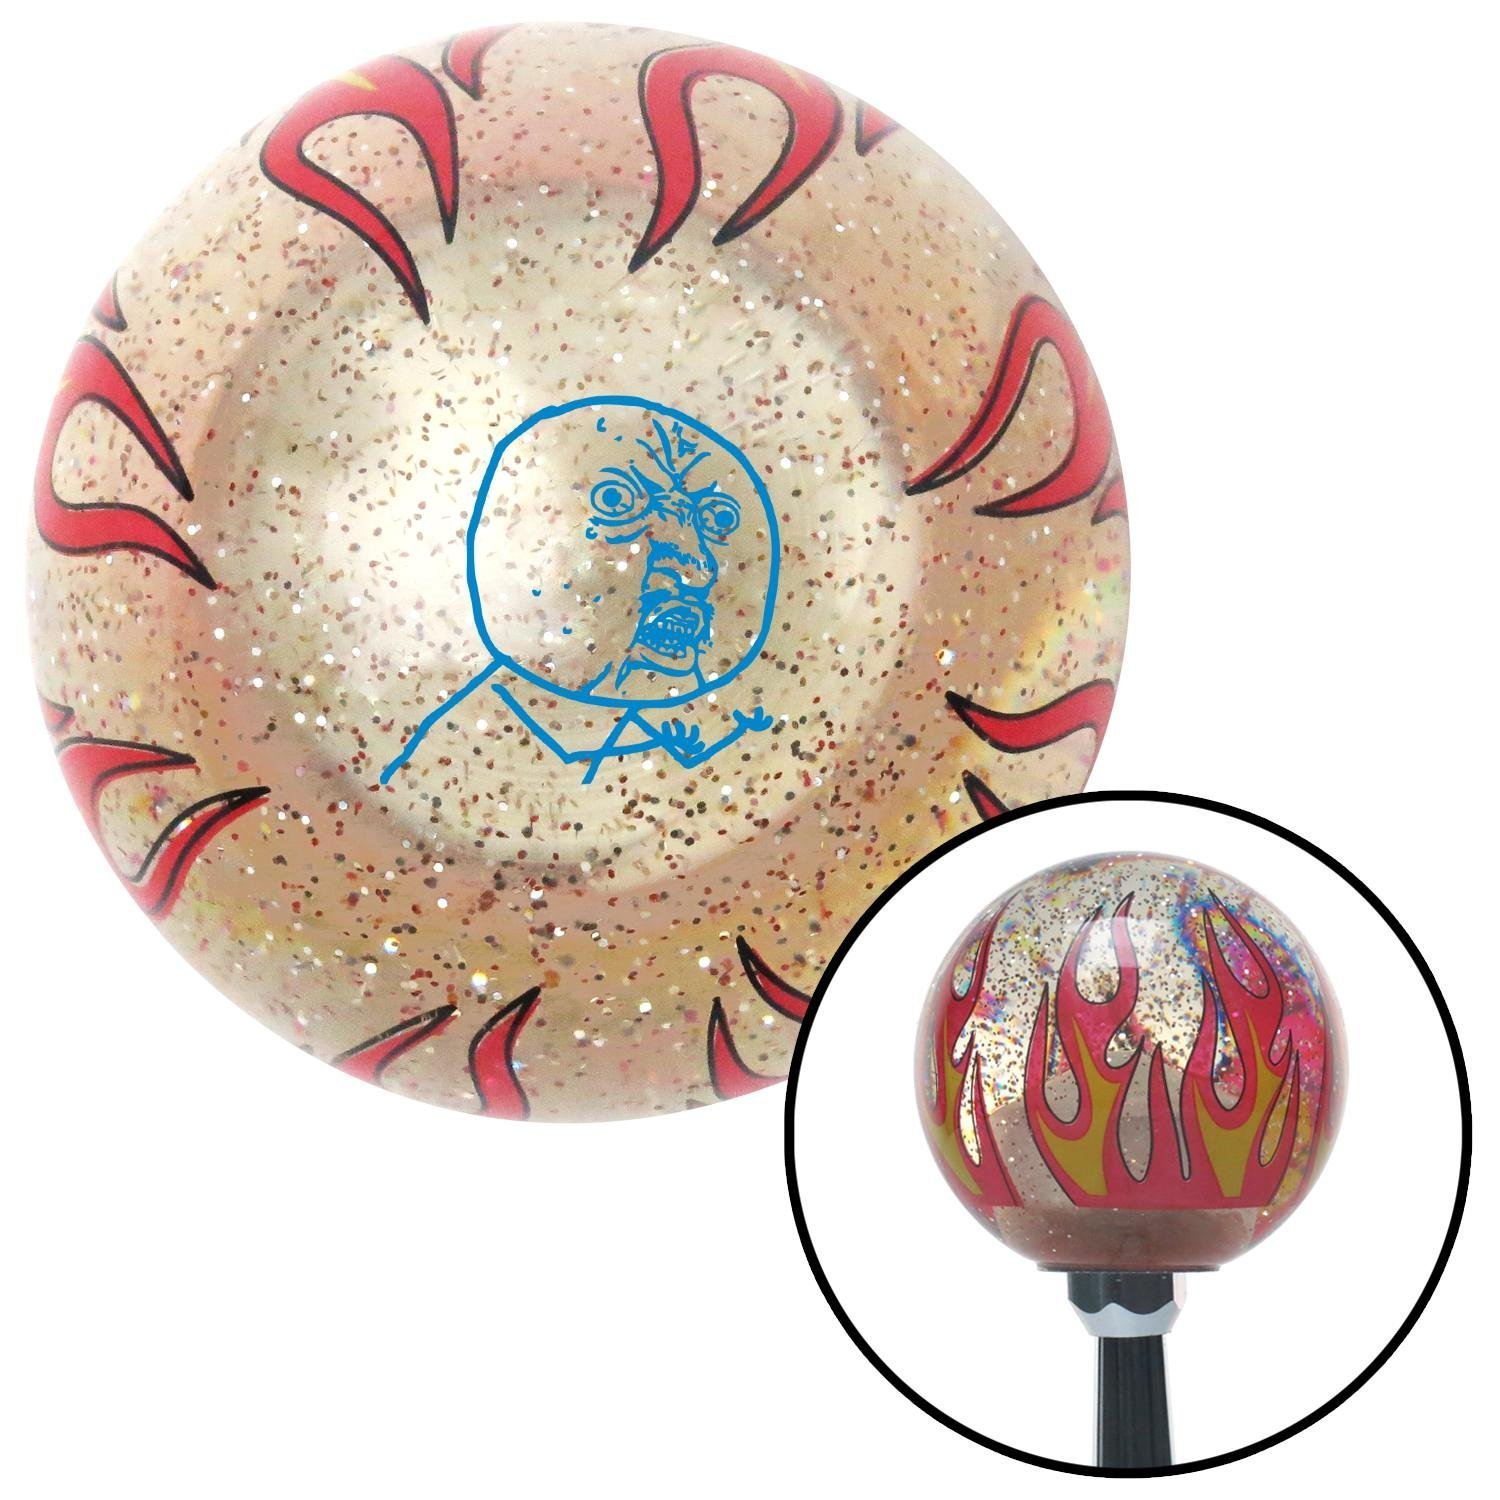 American Shifter 295430 Shift Knob Blue Yuno Clear Flame Metal Flake with M16 x 1.5 Insert